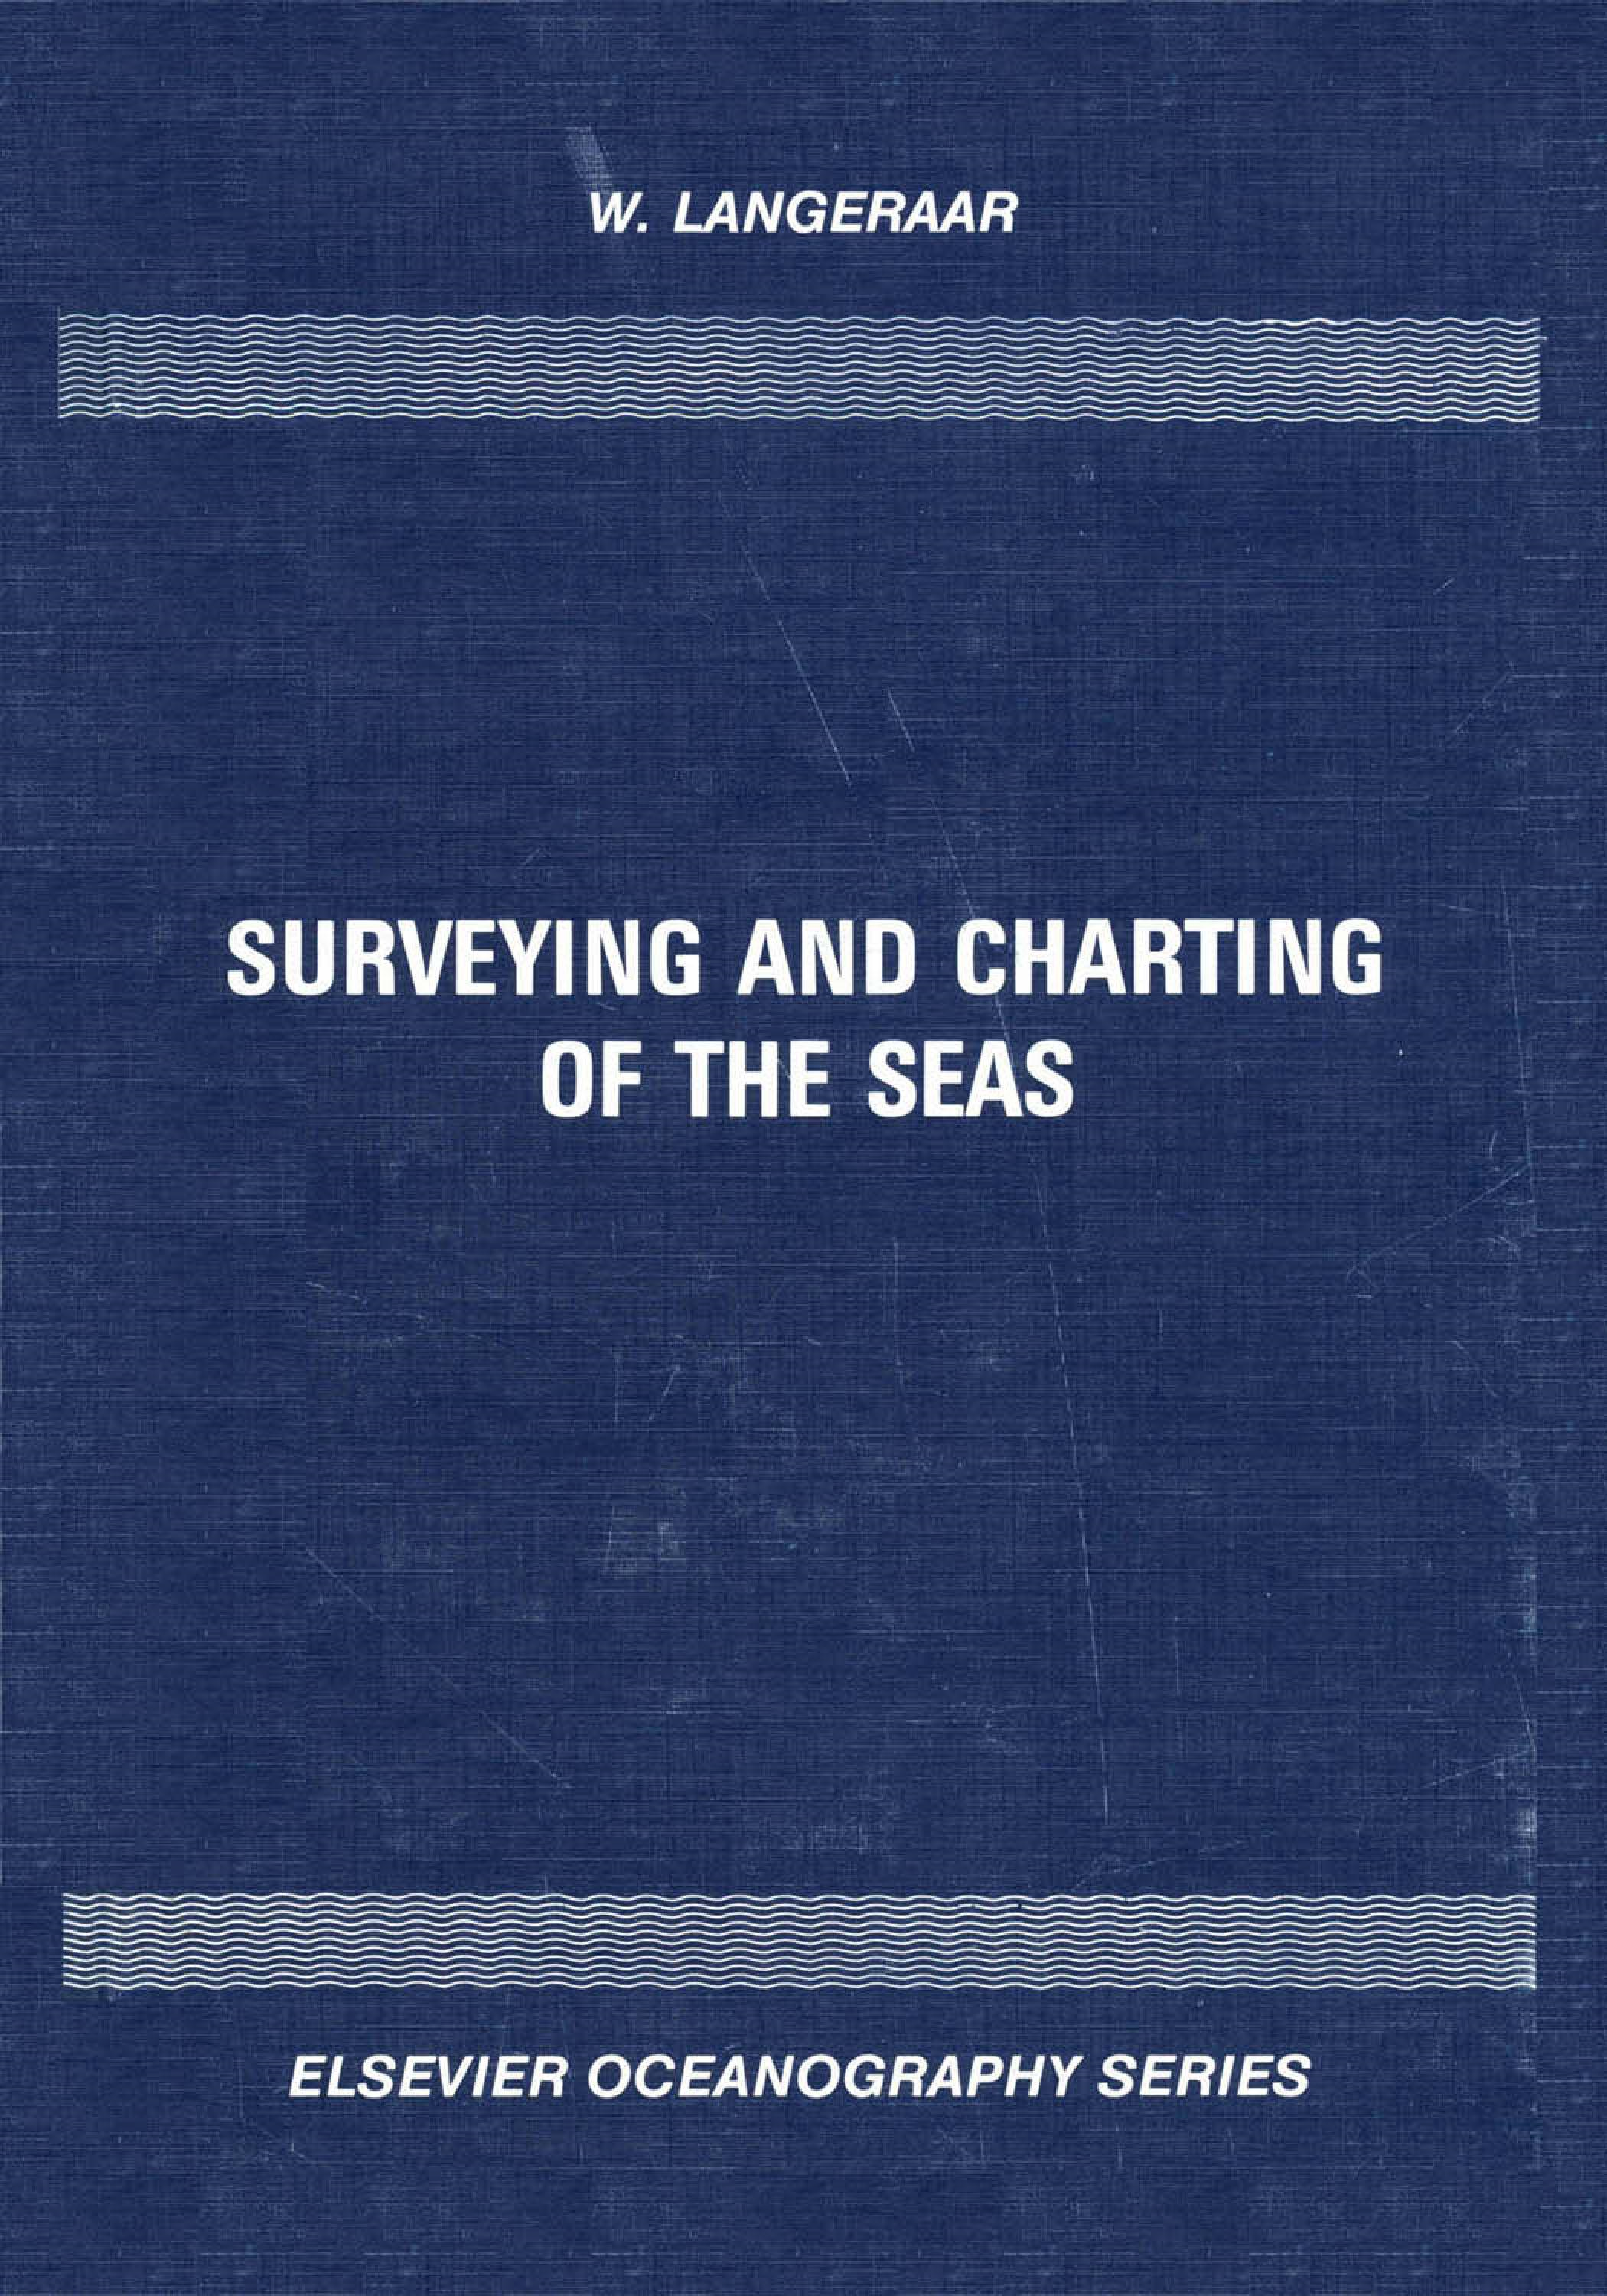 Surveying and Charting of the Seas